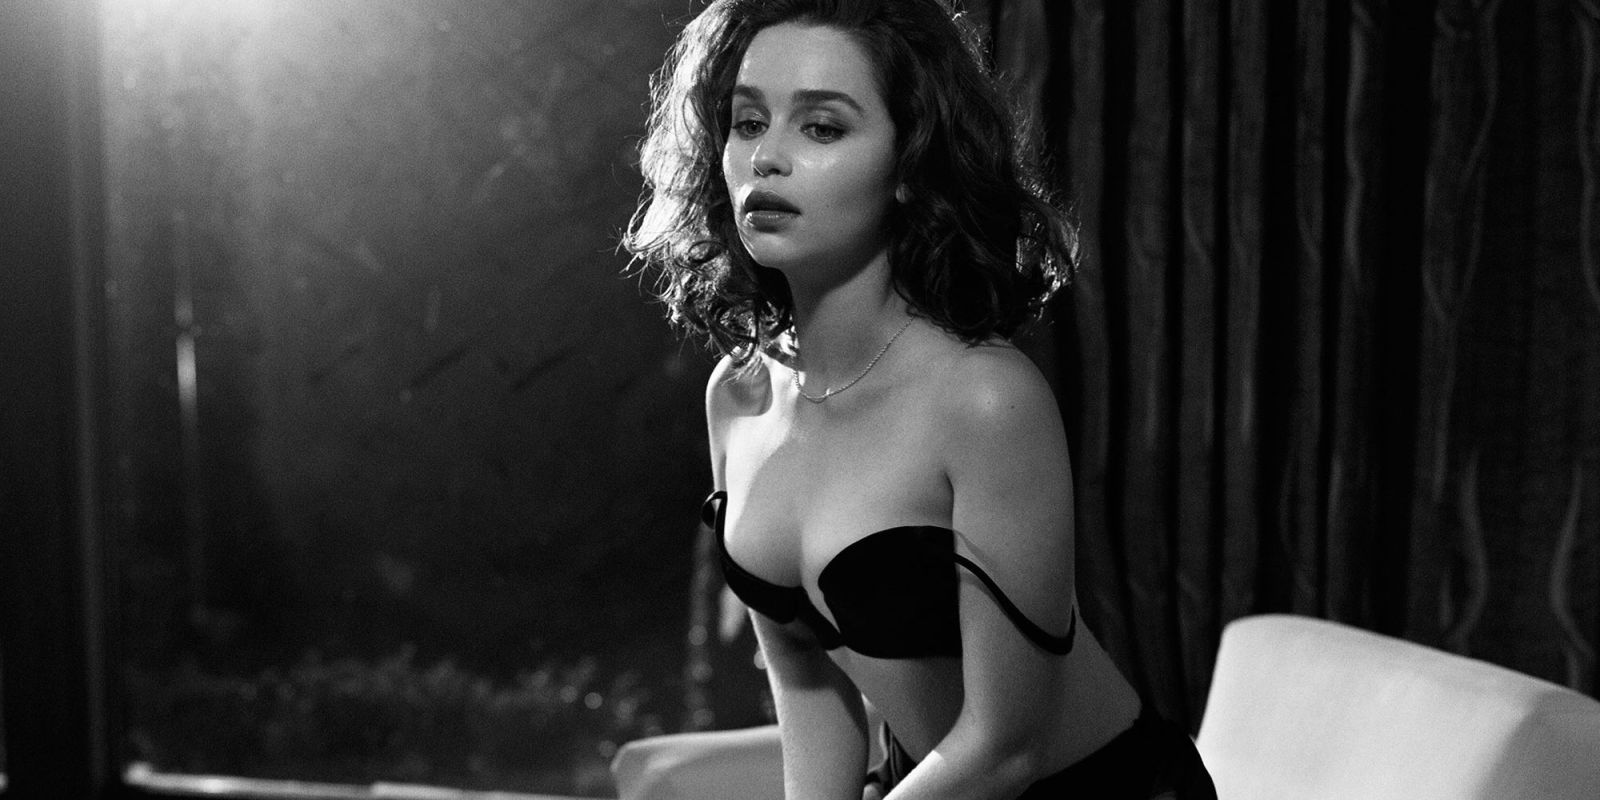 emilia clarke photo session